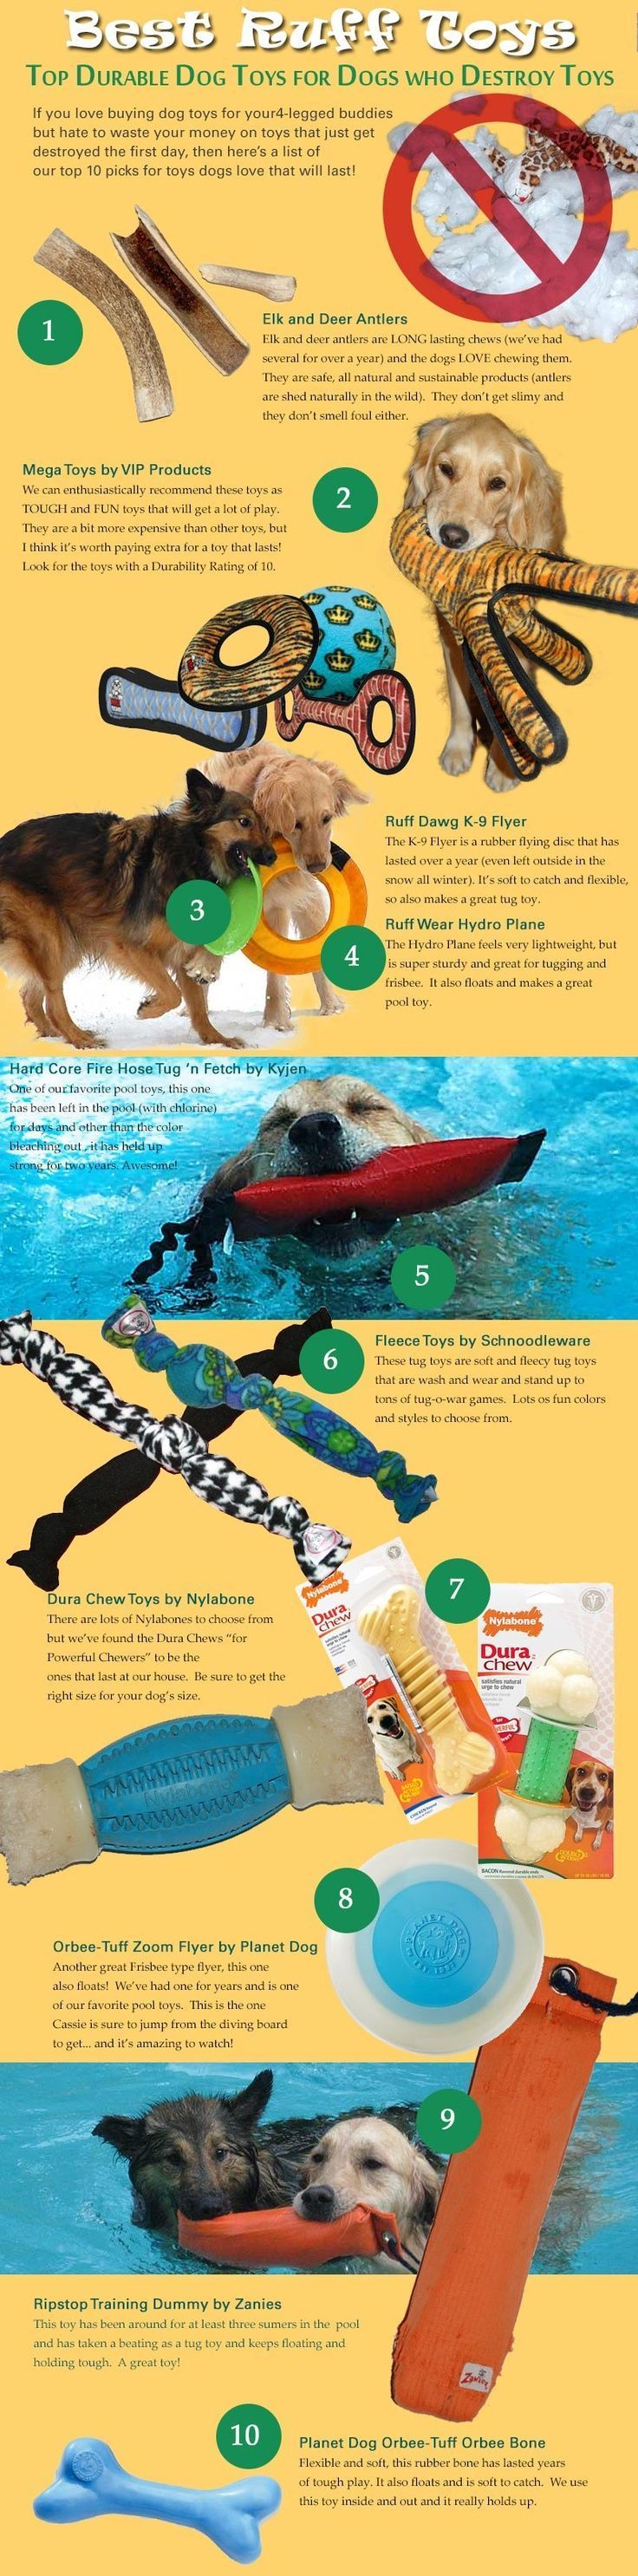 Best 25 Best dog toys ideas on Pinterest